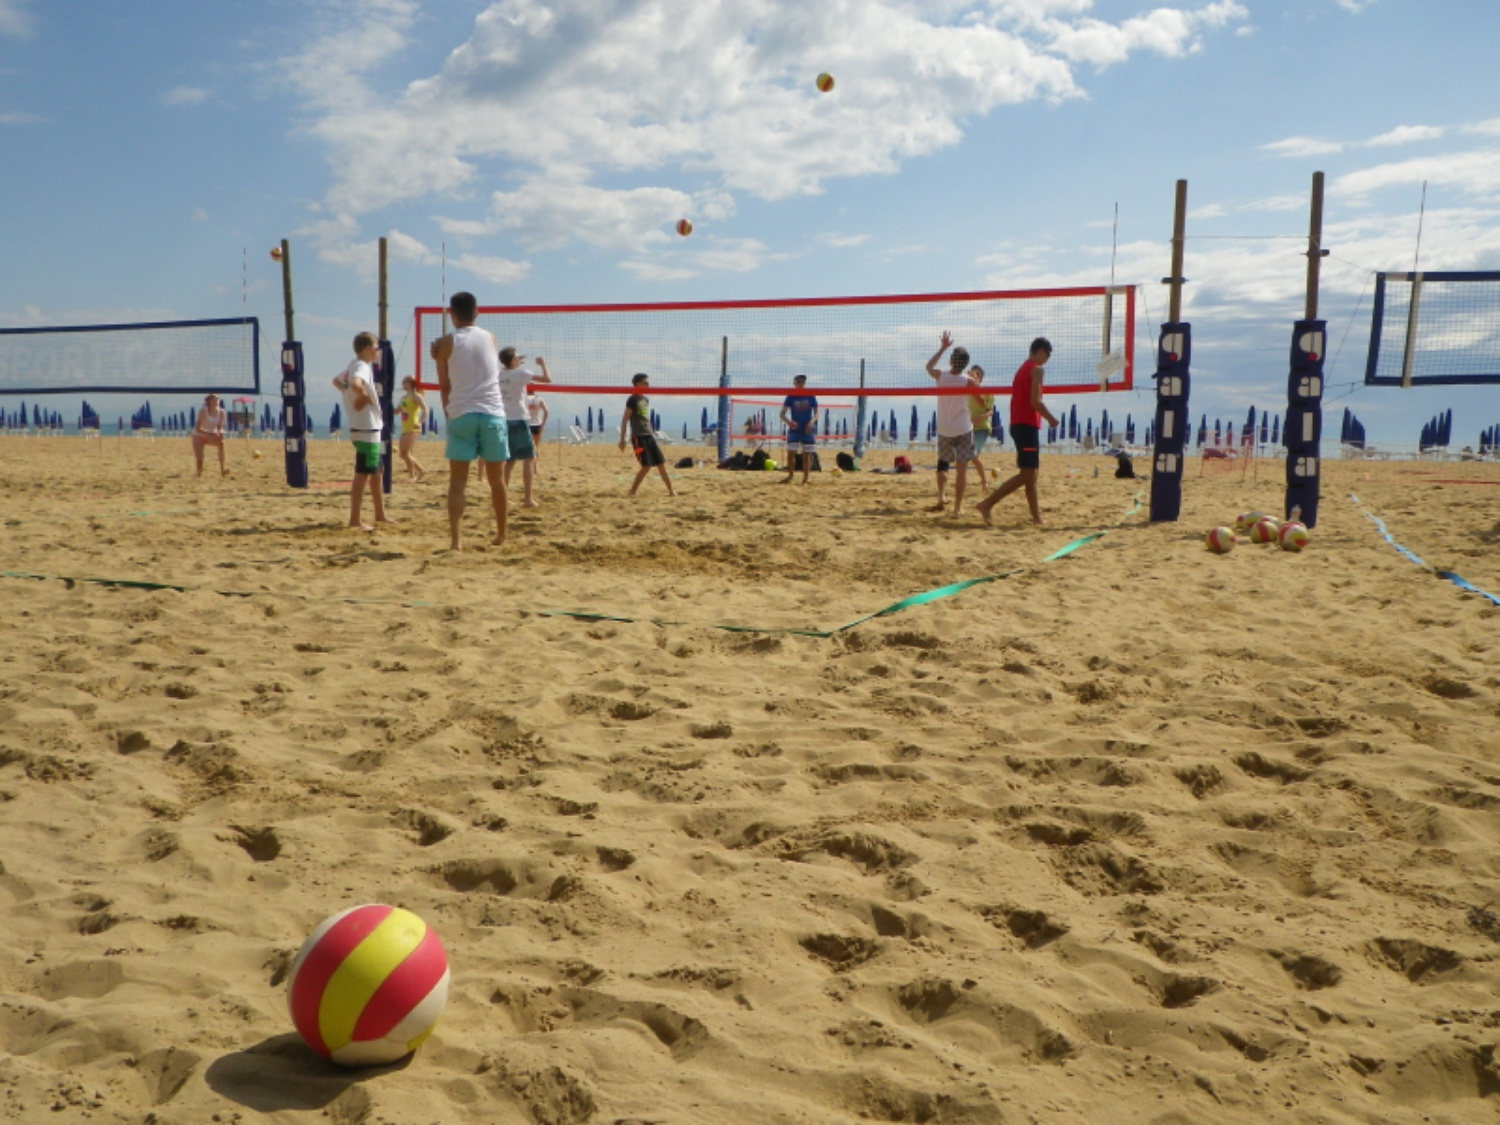 Beach-Volleyballfelder Ge.Tur. ©BlueSport.cz